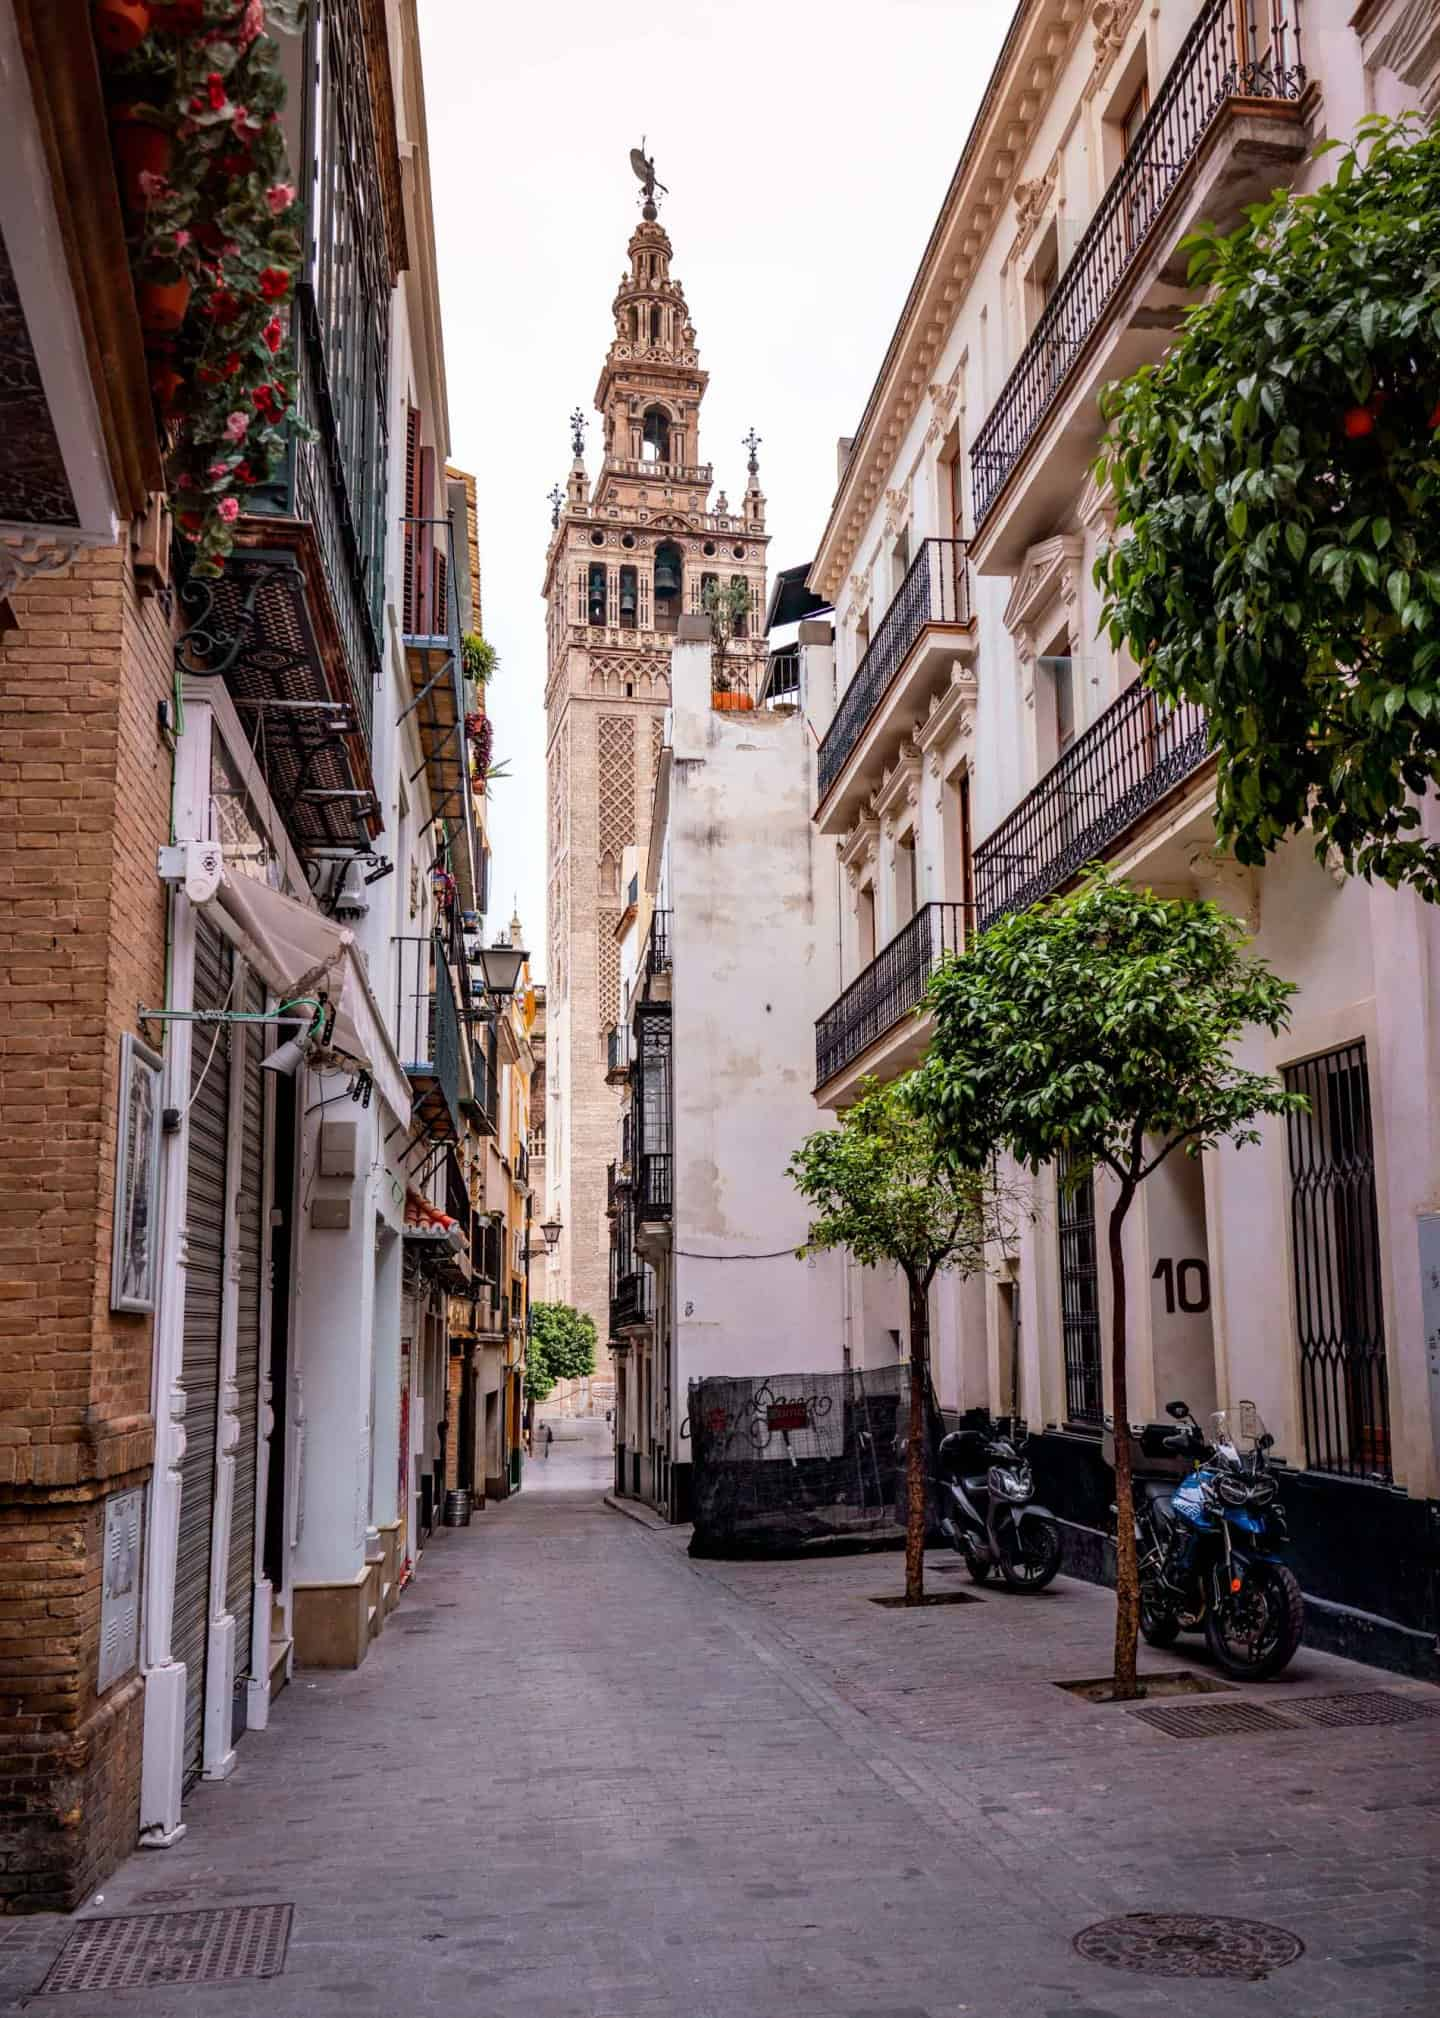 View of La Giralda from Calle Placentines Seville taken during 3 days in Seville